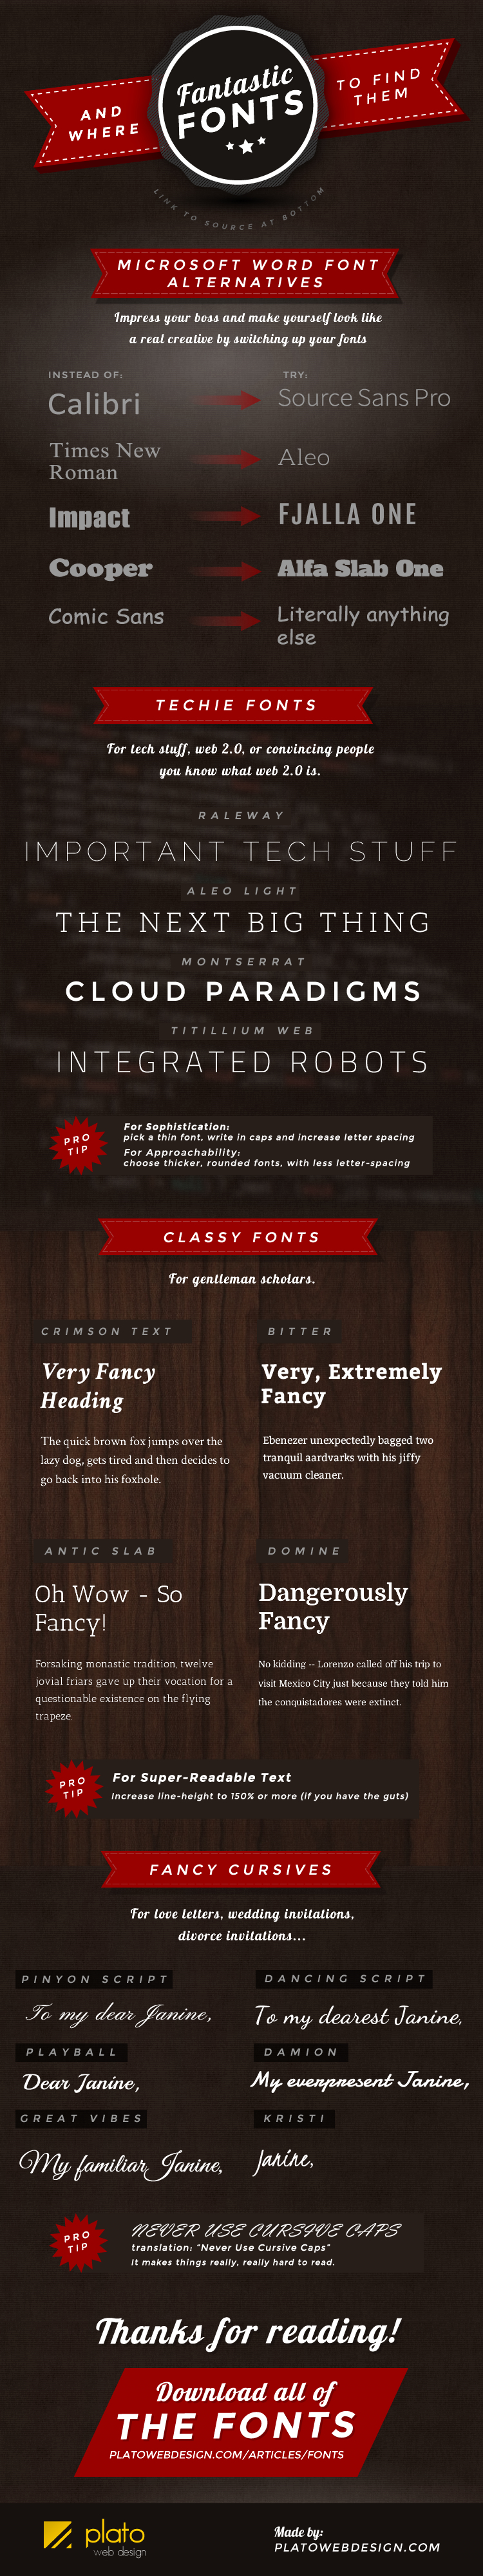 having trouble reading the infographic click on the image to make it larger - Best Font For Resumes